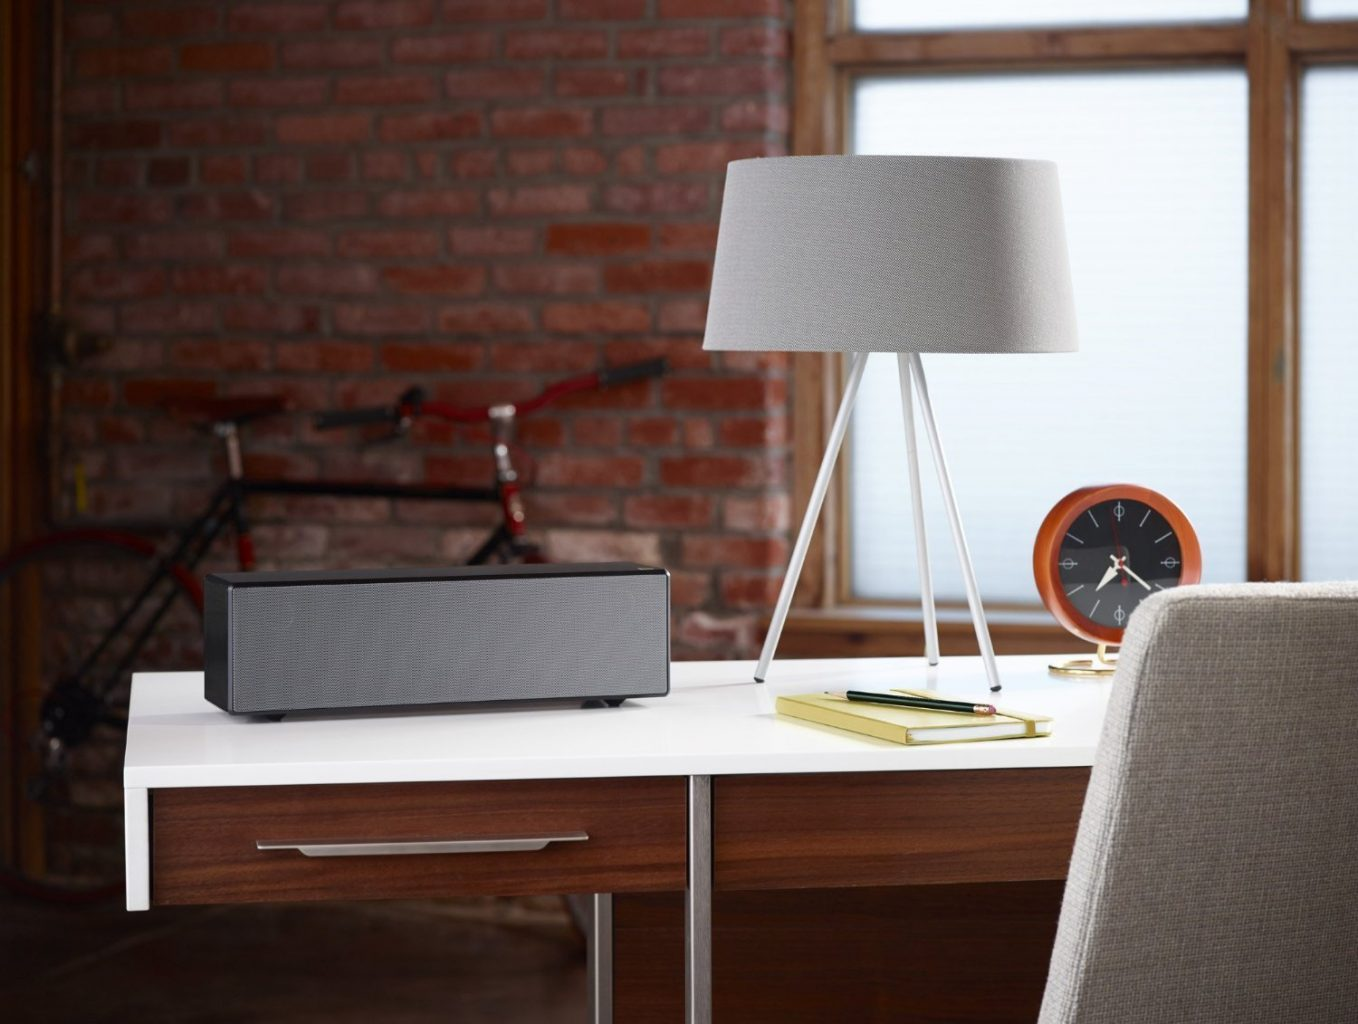 Sony SRSX88 Premium Hi-Resolution Bluetooth Speaker